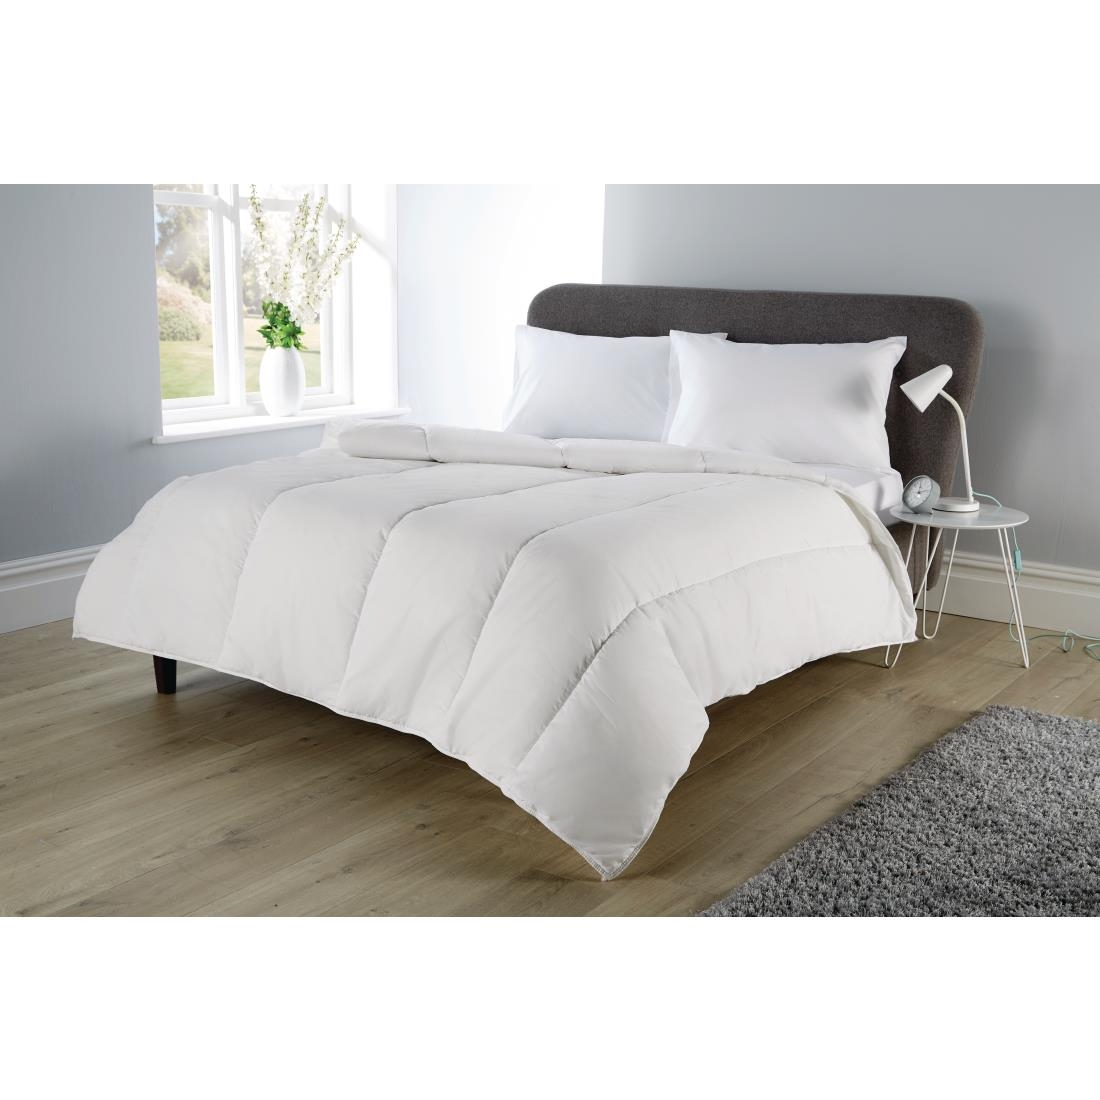 Image of Eco Hollowfibre 10.5 Tog Duvet Double